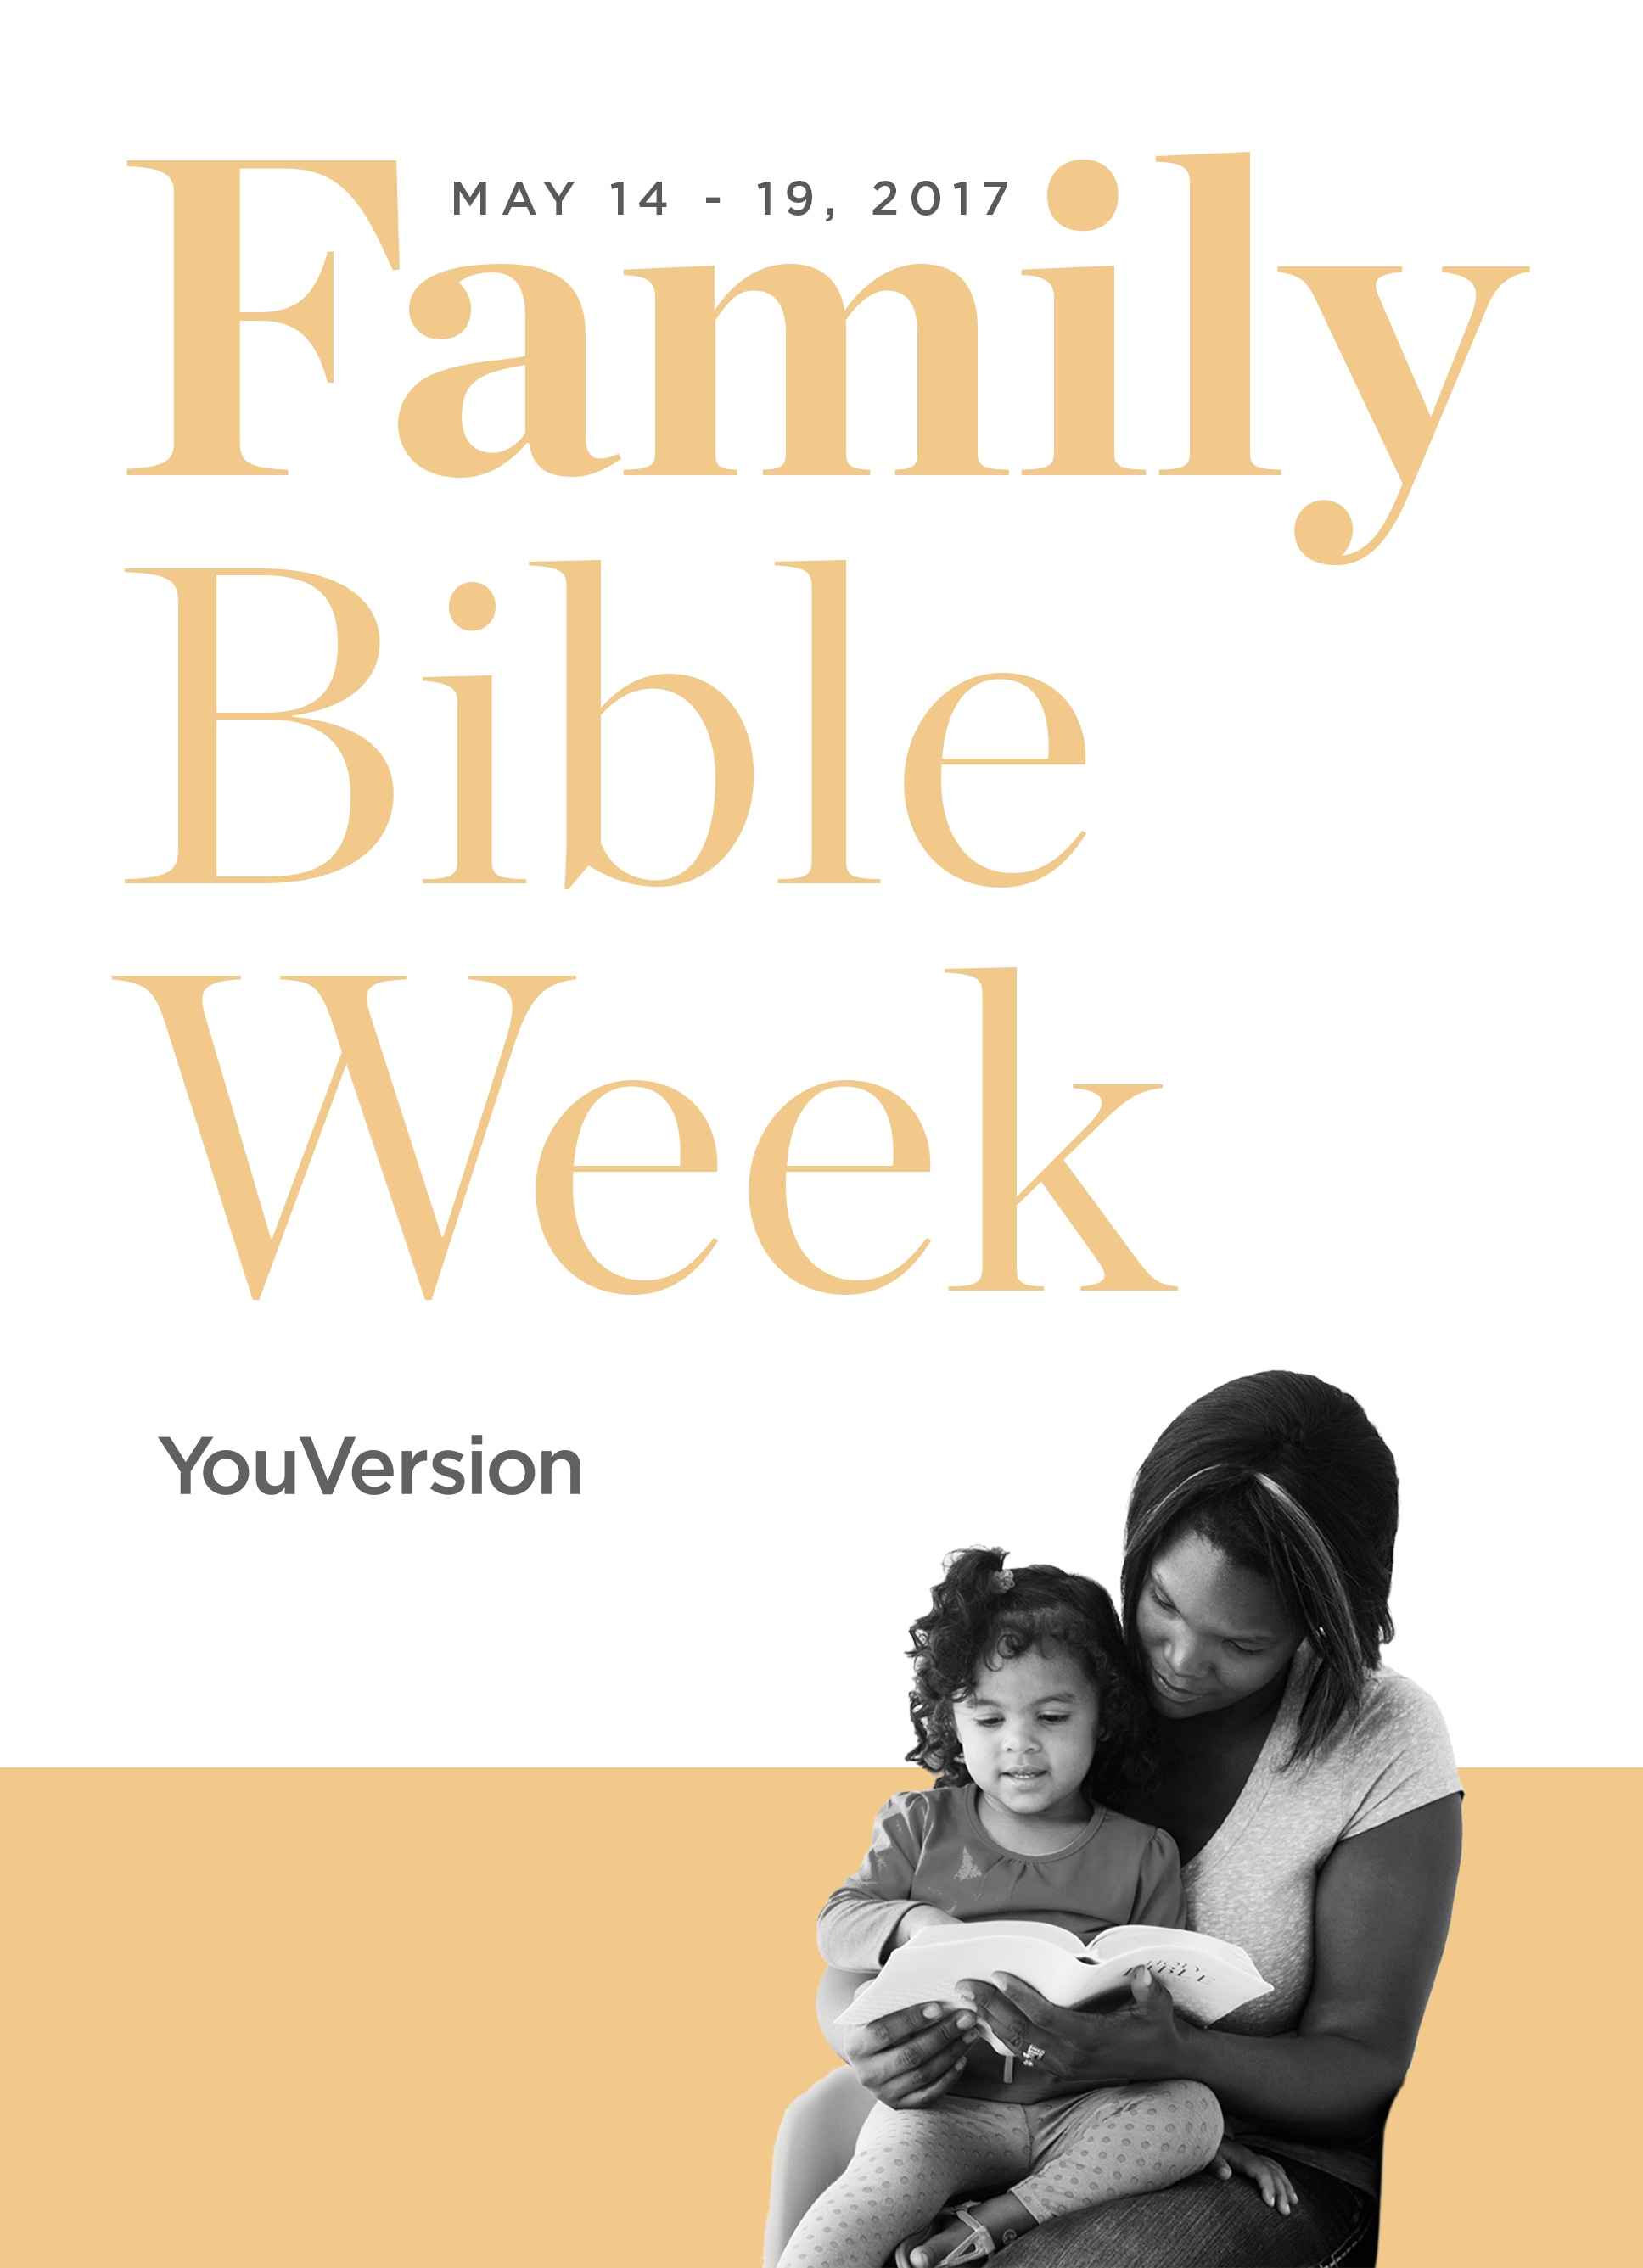 Family Bible Week 2017 Share Your Story